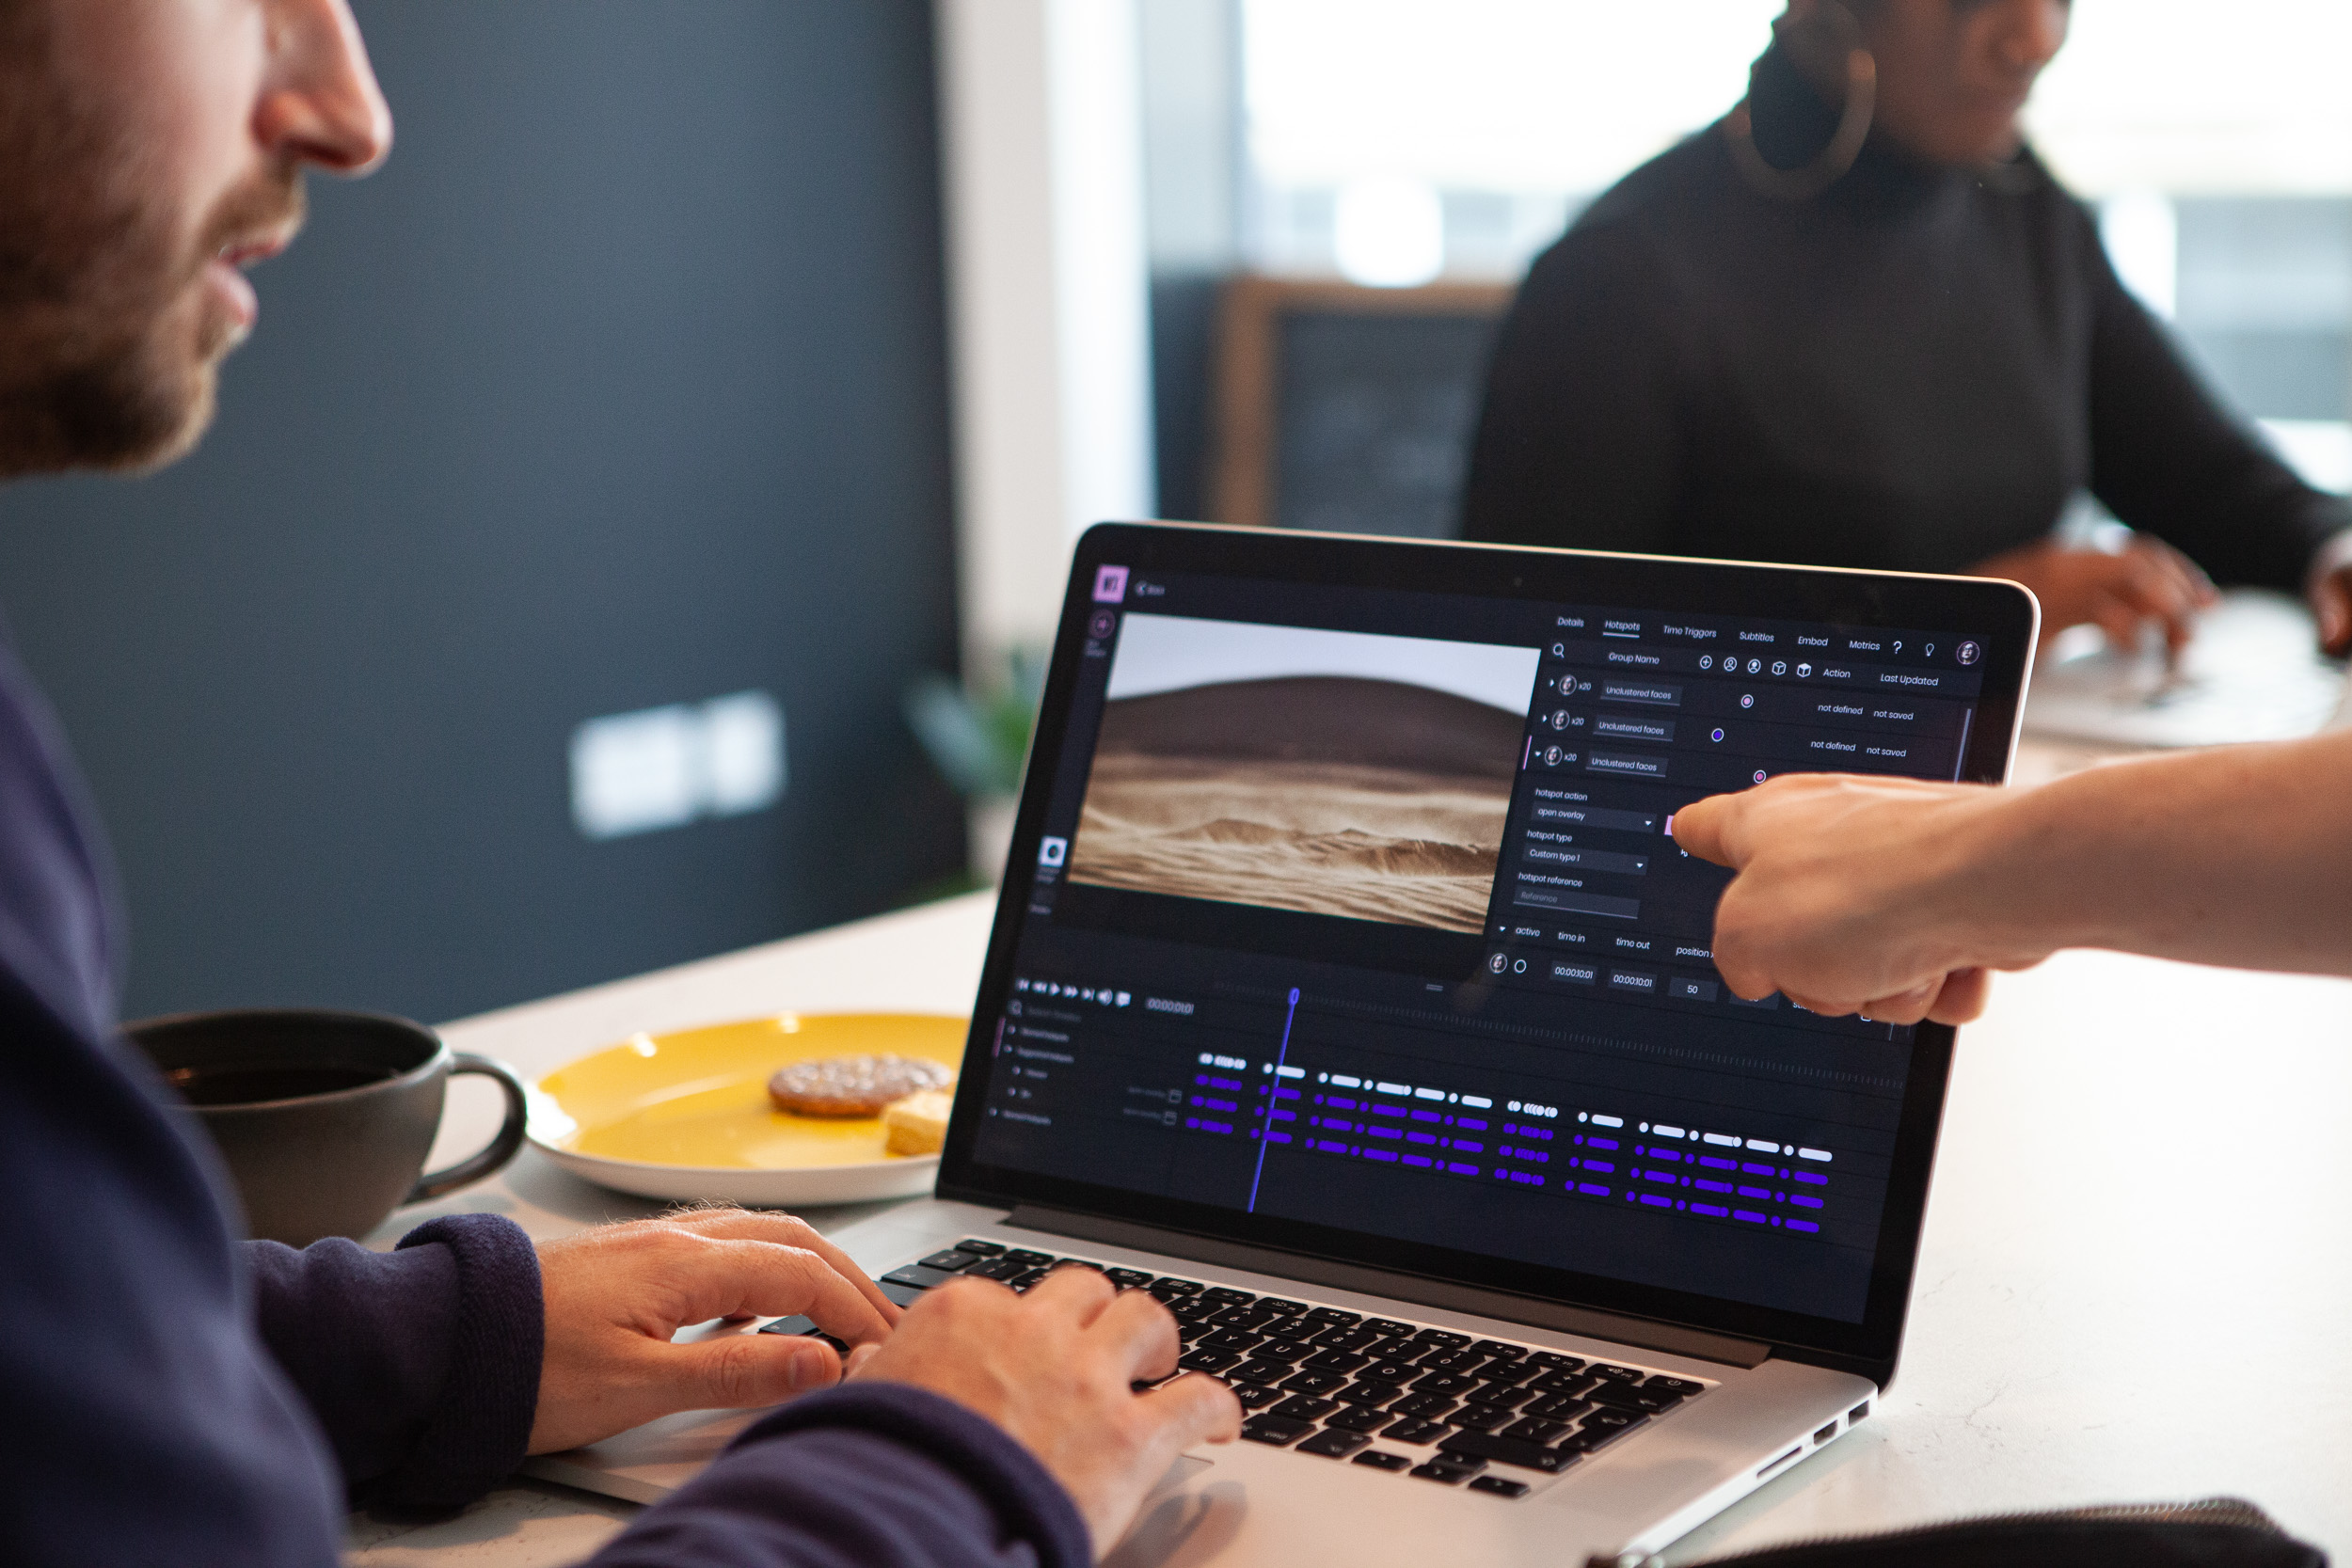 A man sits at a laptop creating an interactive video using WIREWAX Studio. Someone is pointing to a detail on the screen off frame.